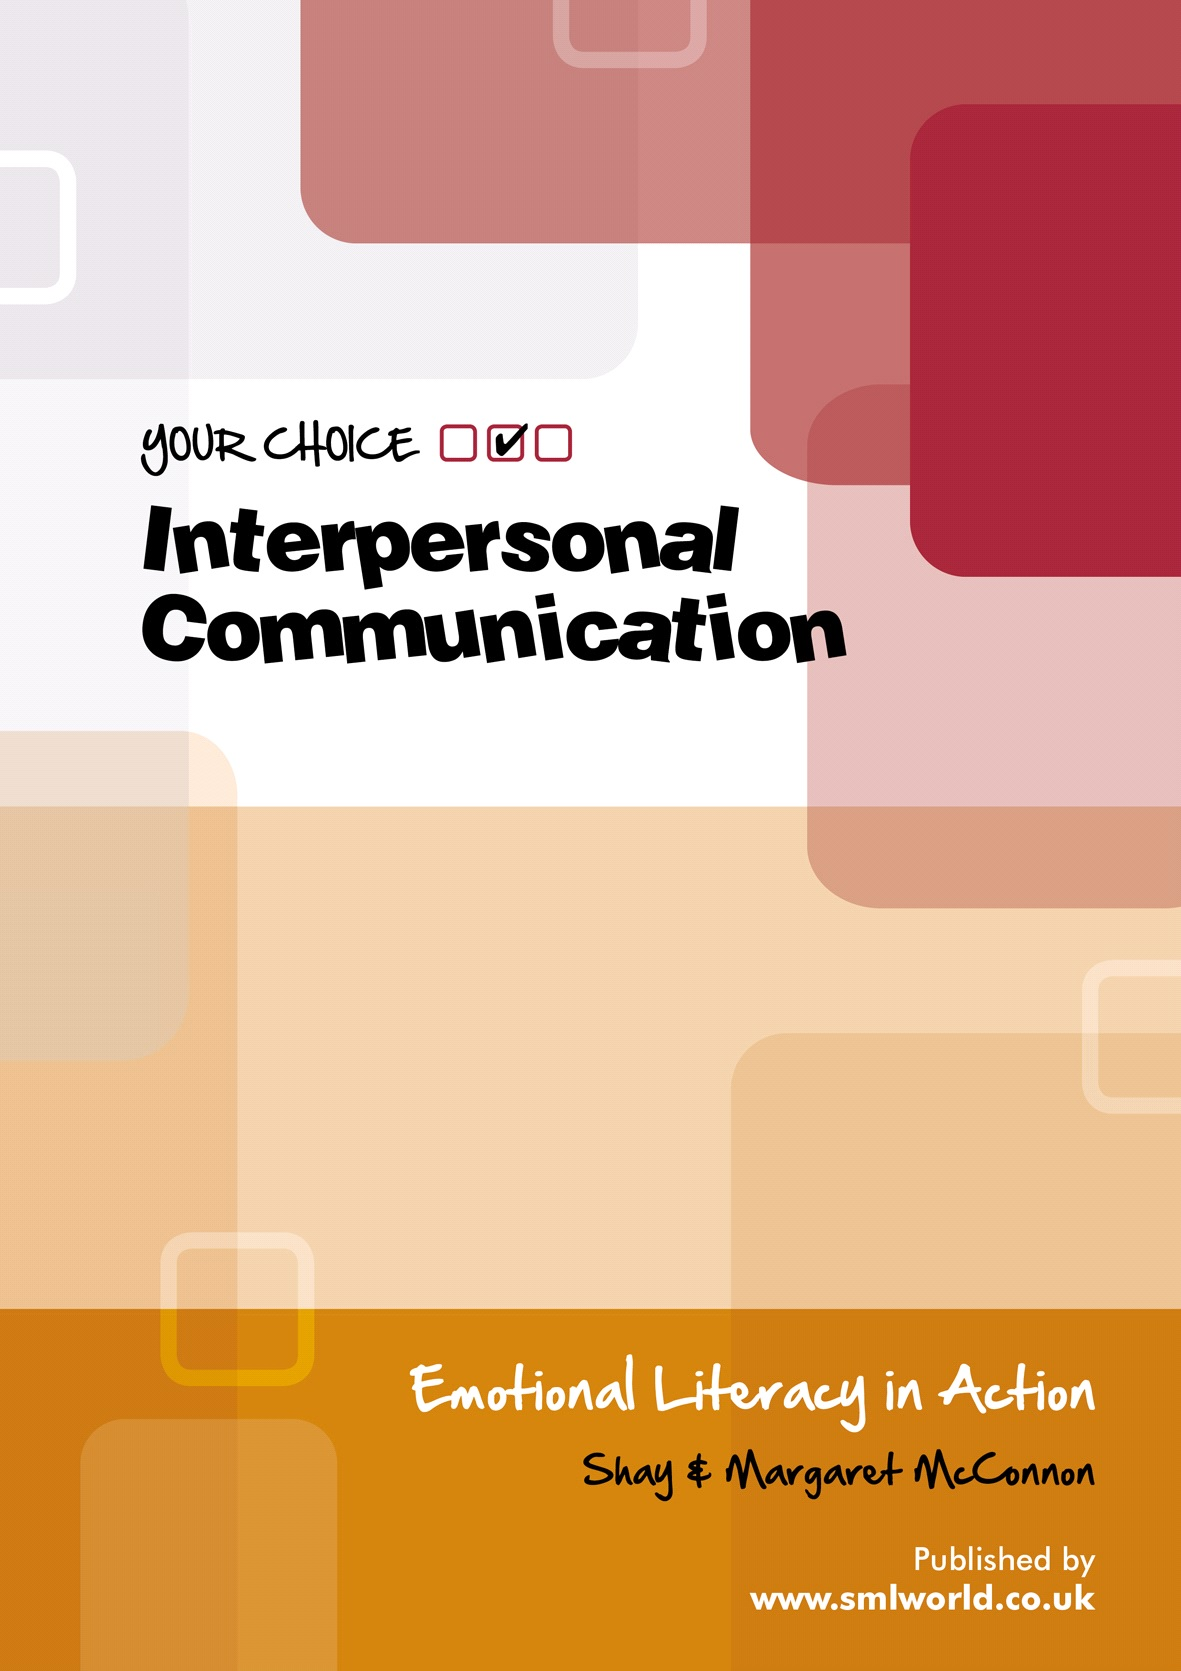 Your Choice Interpersonal Communication Programme